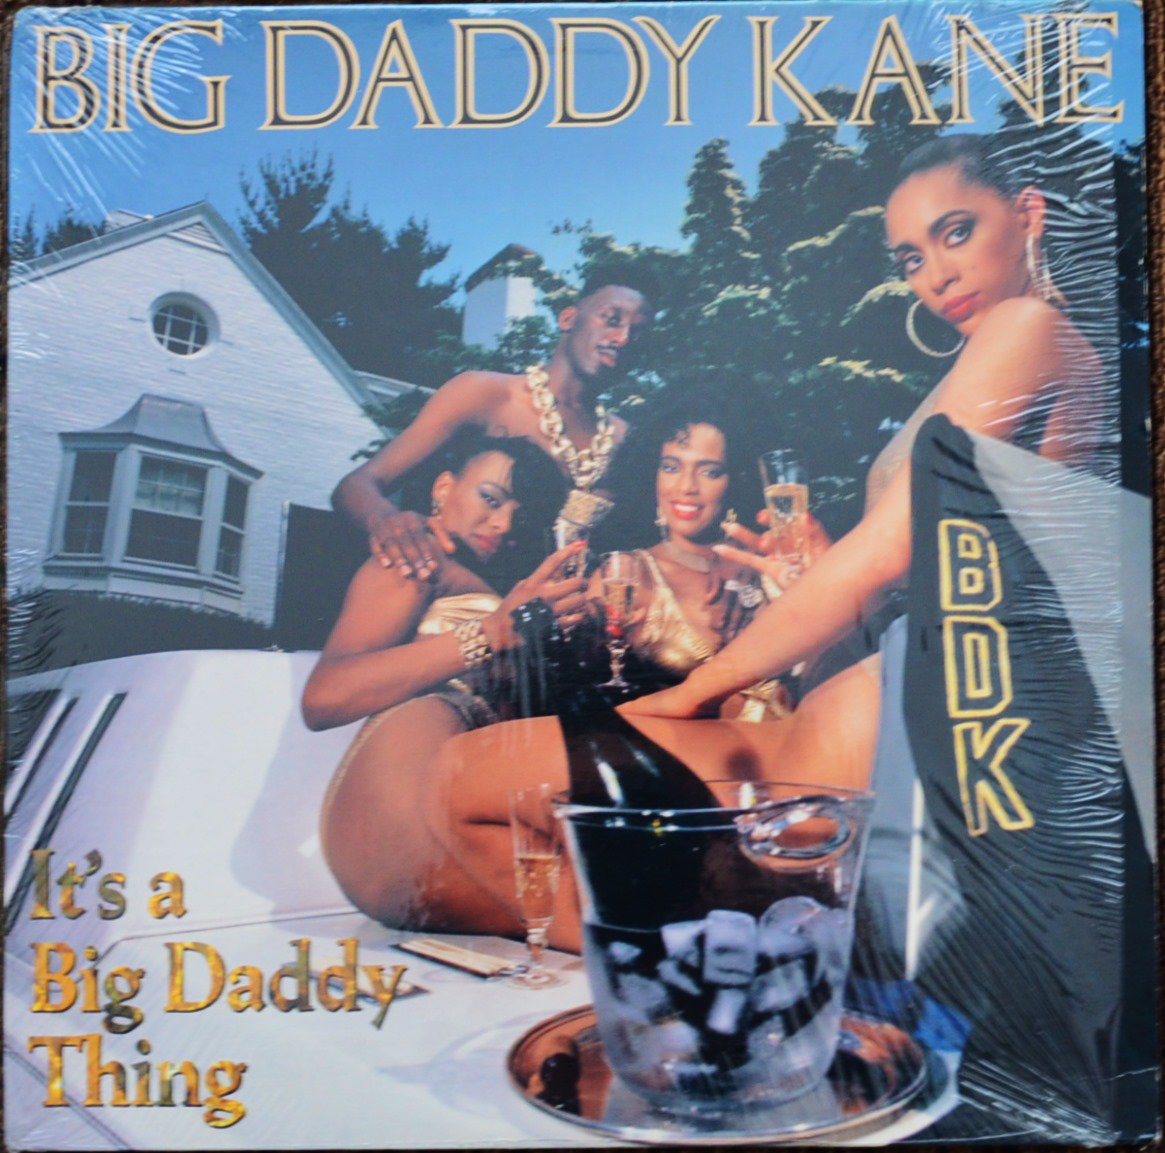 BIG DADDY KANE / IT'S A BIG DADDY THING (1LP)